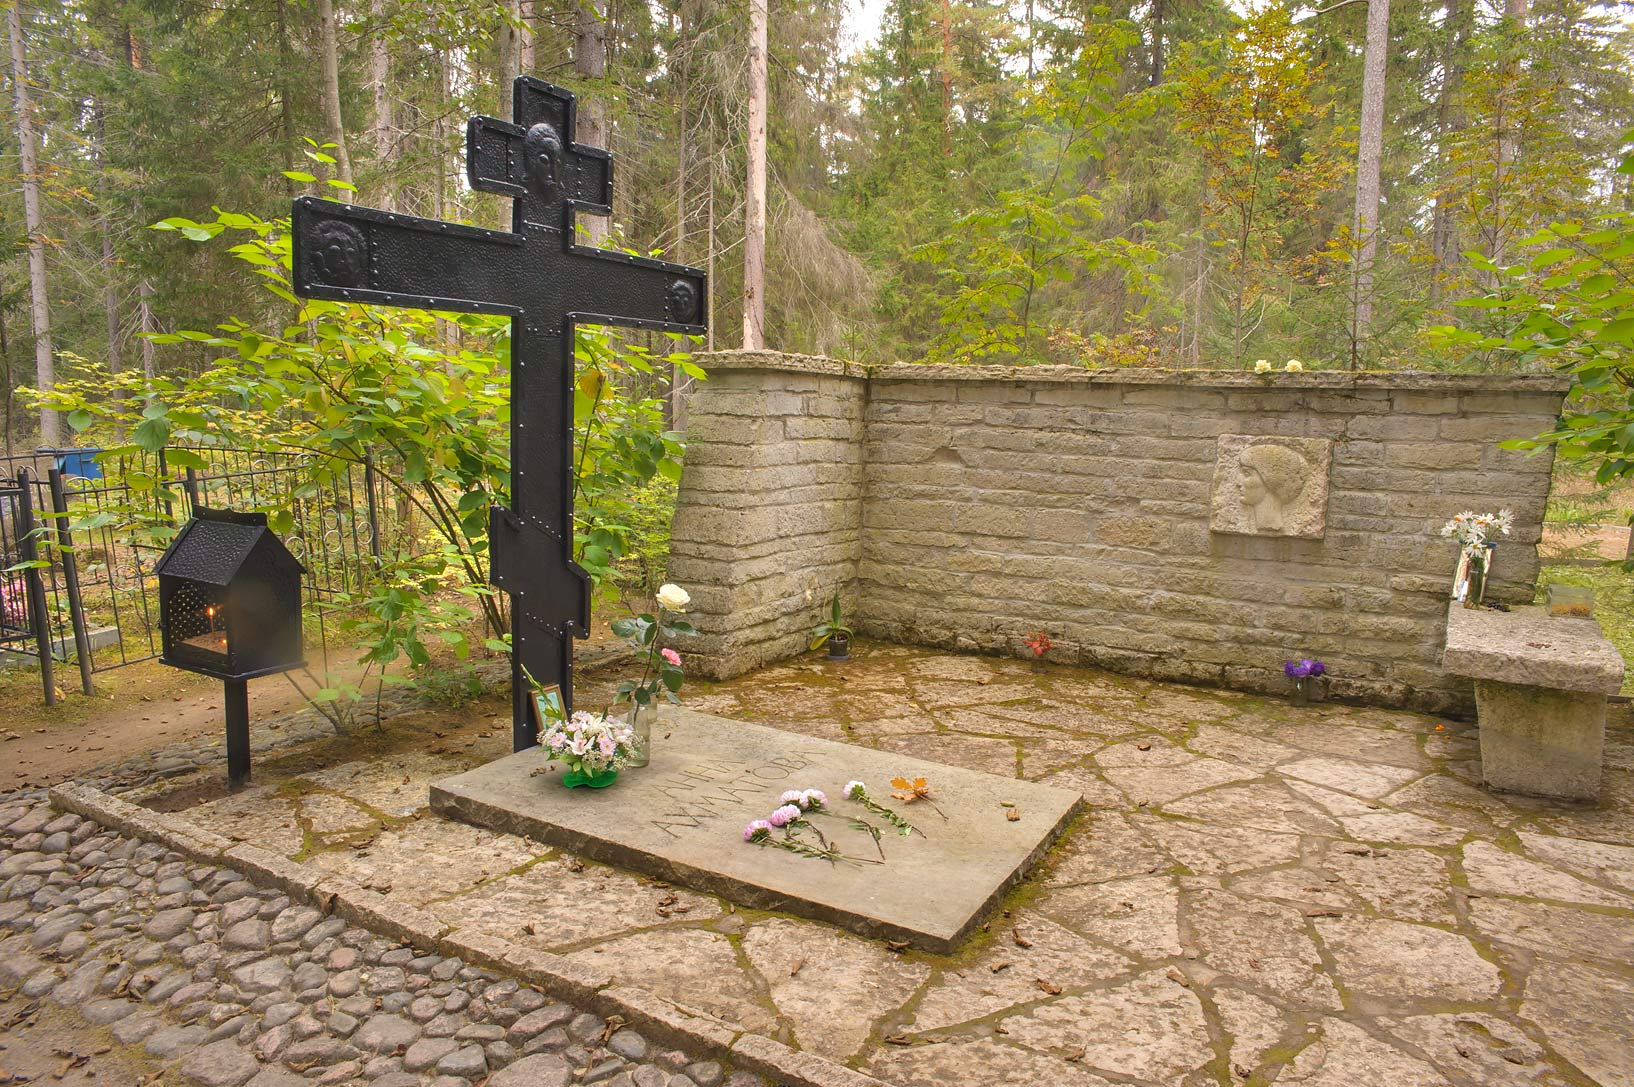 Tomb of a Soviet poet Anna Akhmatova in Komarovo, 25 miles west from St.Petersburg. Russia